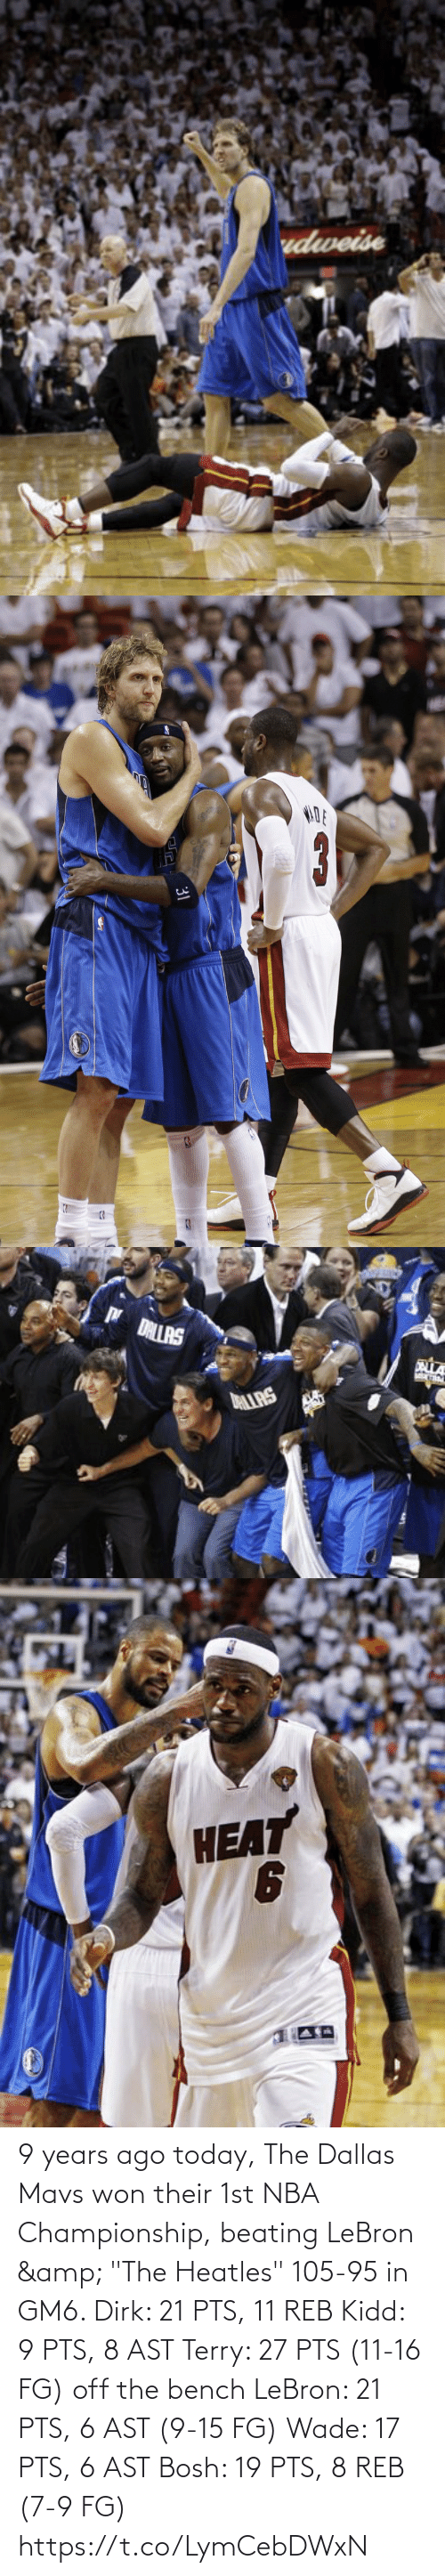 """NBA: 9 years ago today, The Dallas Mavs won their 1st NBA Championship, beating LeBron & """"The Heatles"""" 105-95 in GM6.   Dirk: 21 PTS, 11 REB Kidd: 9 PTS, 8 AST Terry: 27 PTS (11-16 FG) off the bench  LeBron: 21 PTS, 6 AST (9-15 FG) Wade: 17 PTS, 6 AST Bosh: 19 PTS, 8 REB (7-9 FG) https://t.co/LymCebDWxN"""